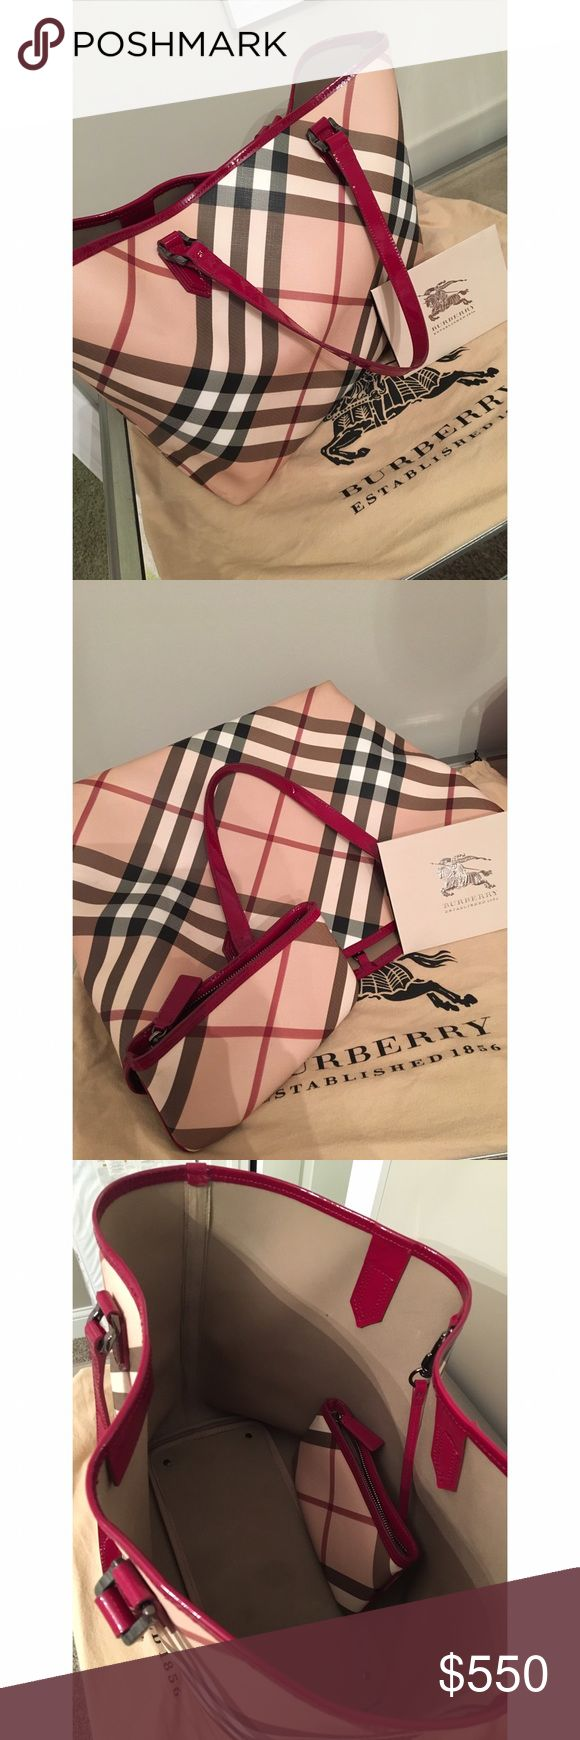 Burberry Tote 💯Authentic💯 Burberry Tote comes with attached pouch, dustbag and receipt. Minor wear and tear (pictures upon request - on handles and bottom edges) Burberry Bags Totes